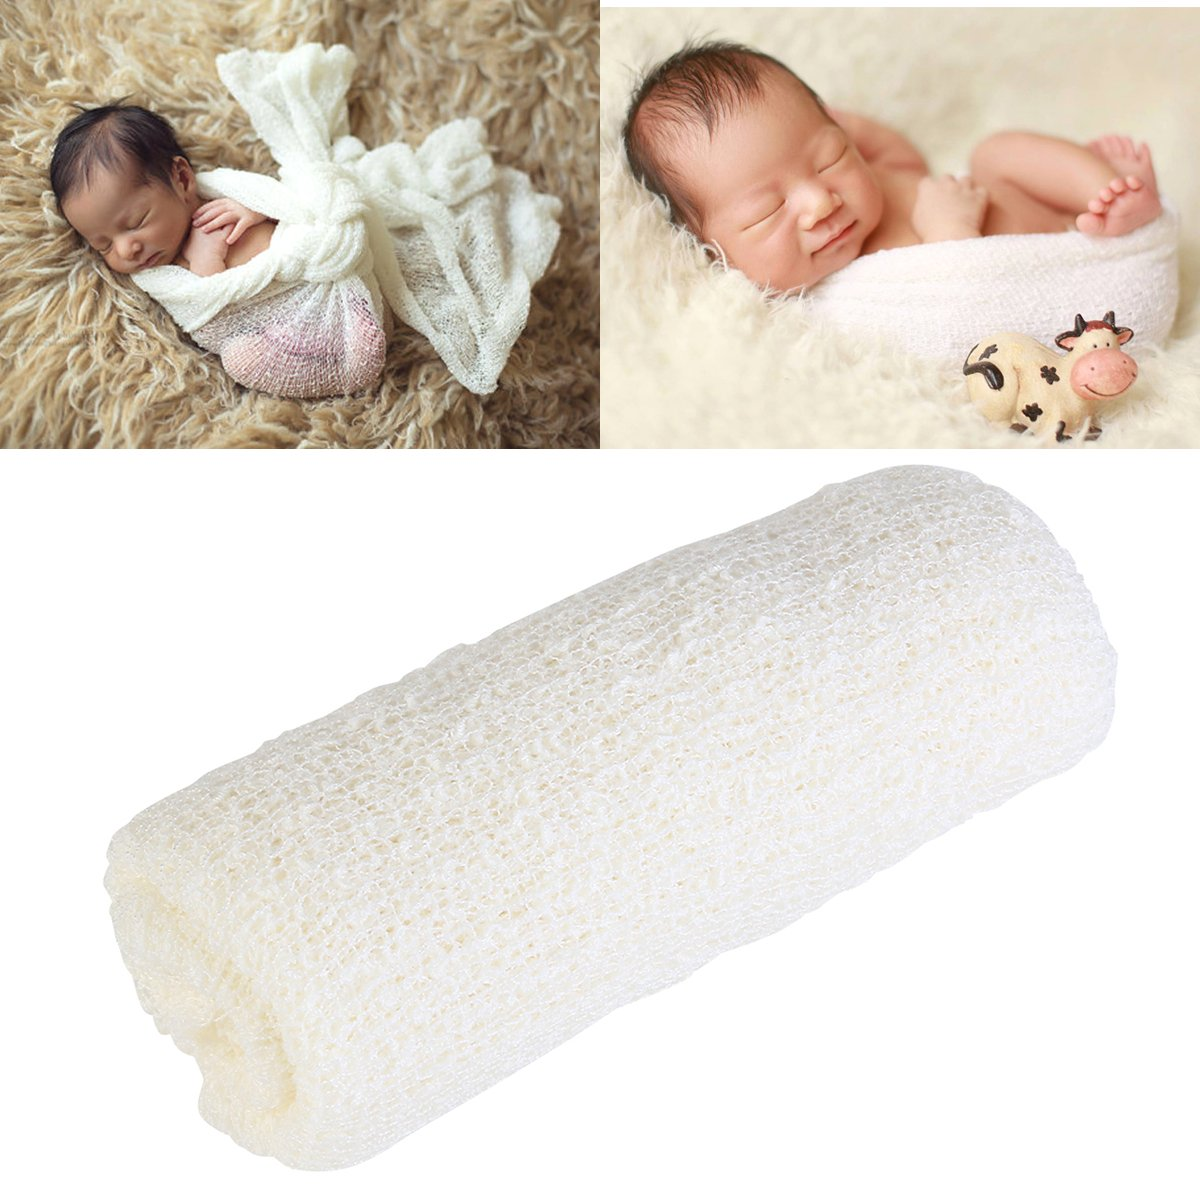 Amazon.com: Tinksky Long Ripple Wrap - DIY Newborn Baby